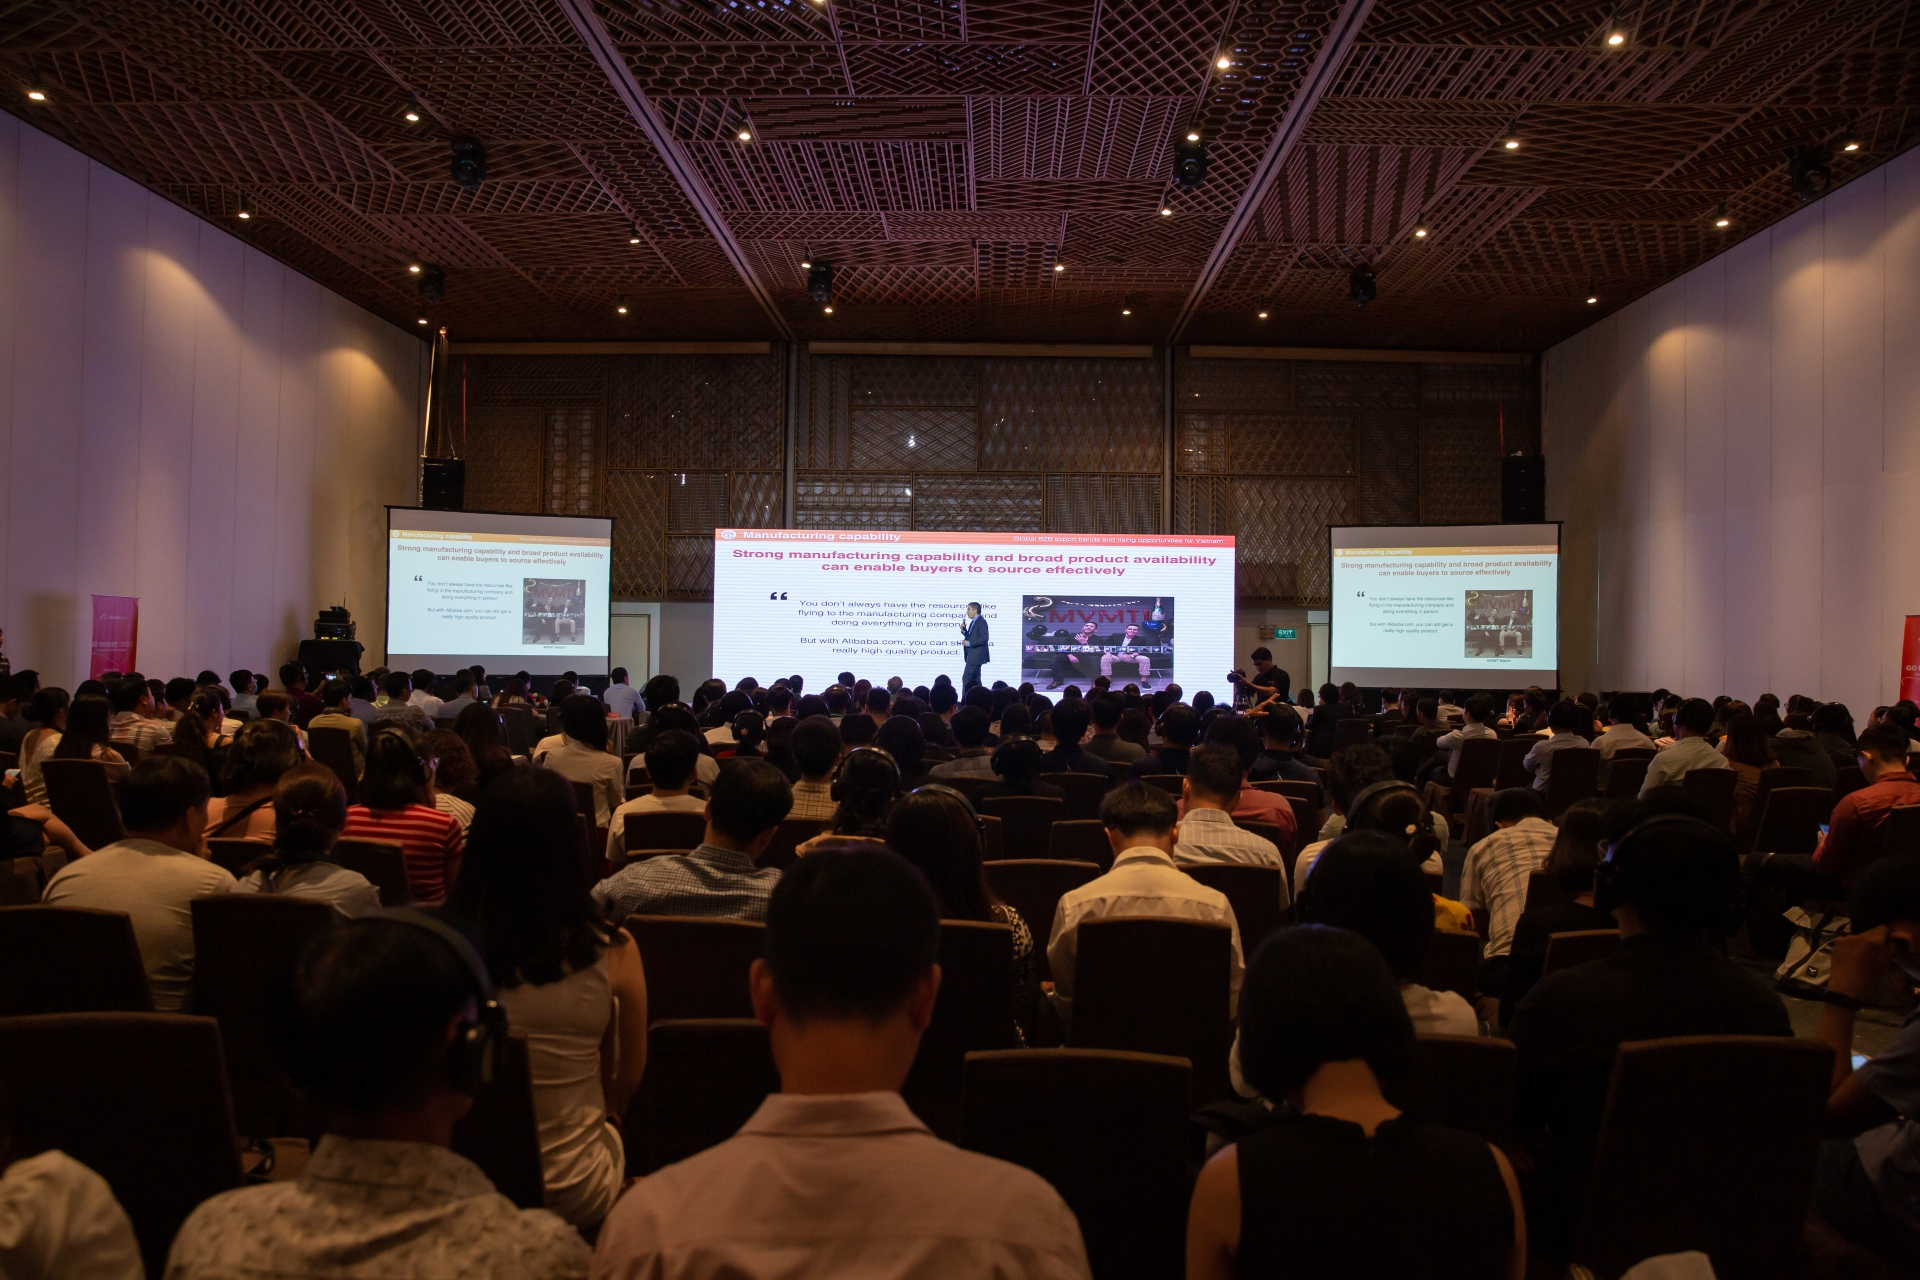 alibabacom gives wing to vietnamese smes to go global